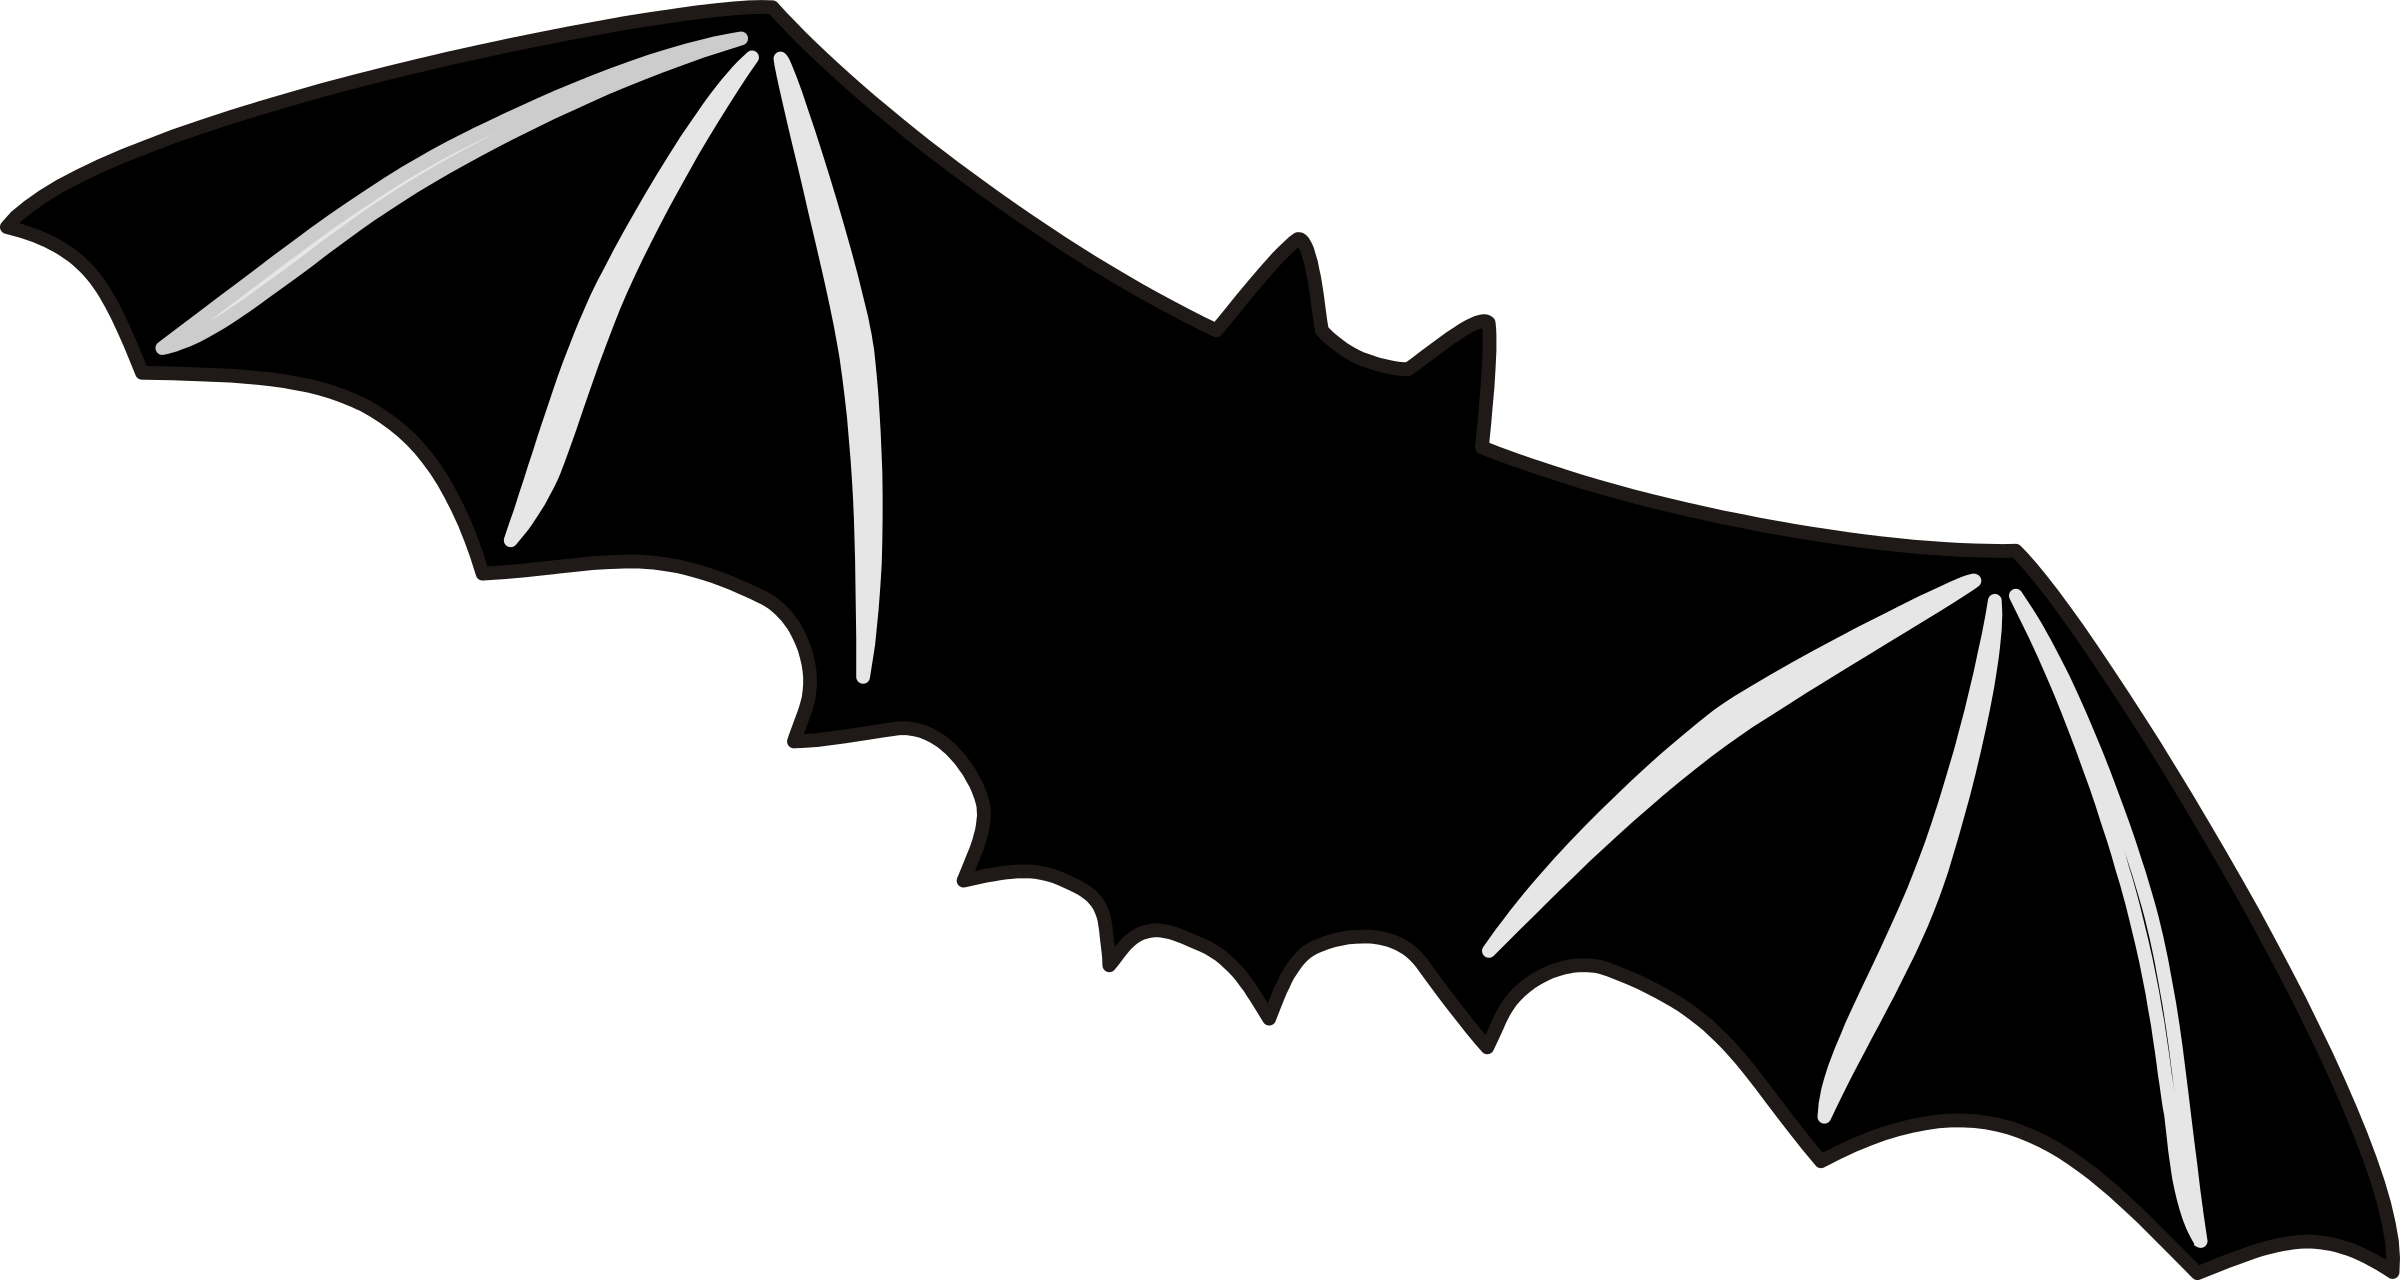 Clipart halloween bat banner freeuse Clipart - Bat banner freeuse